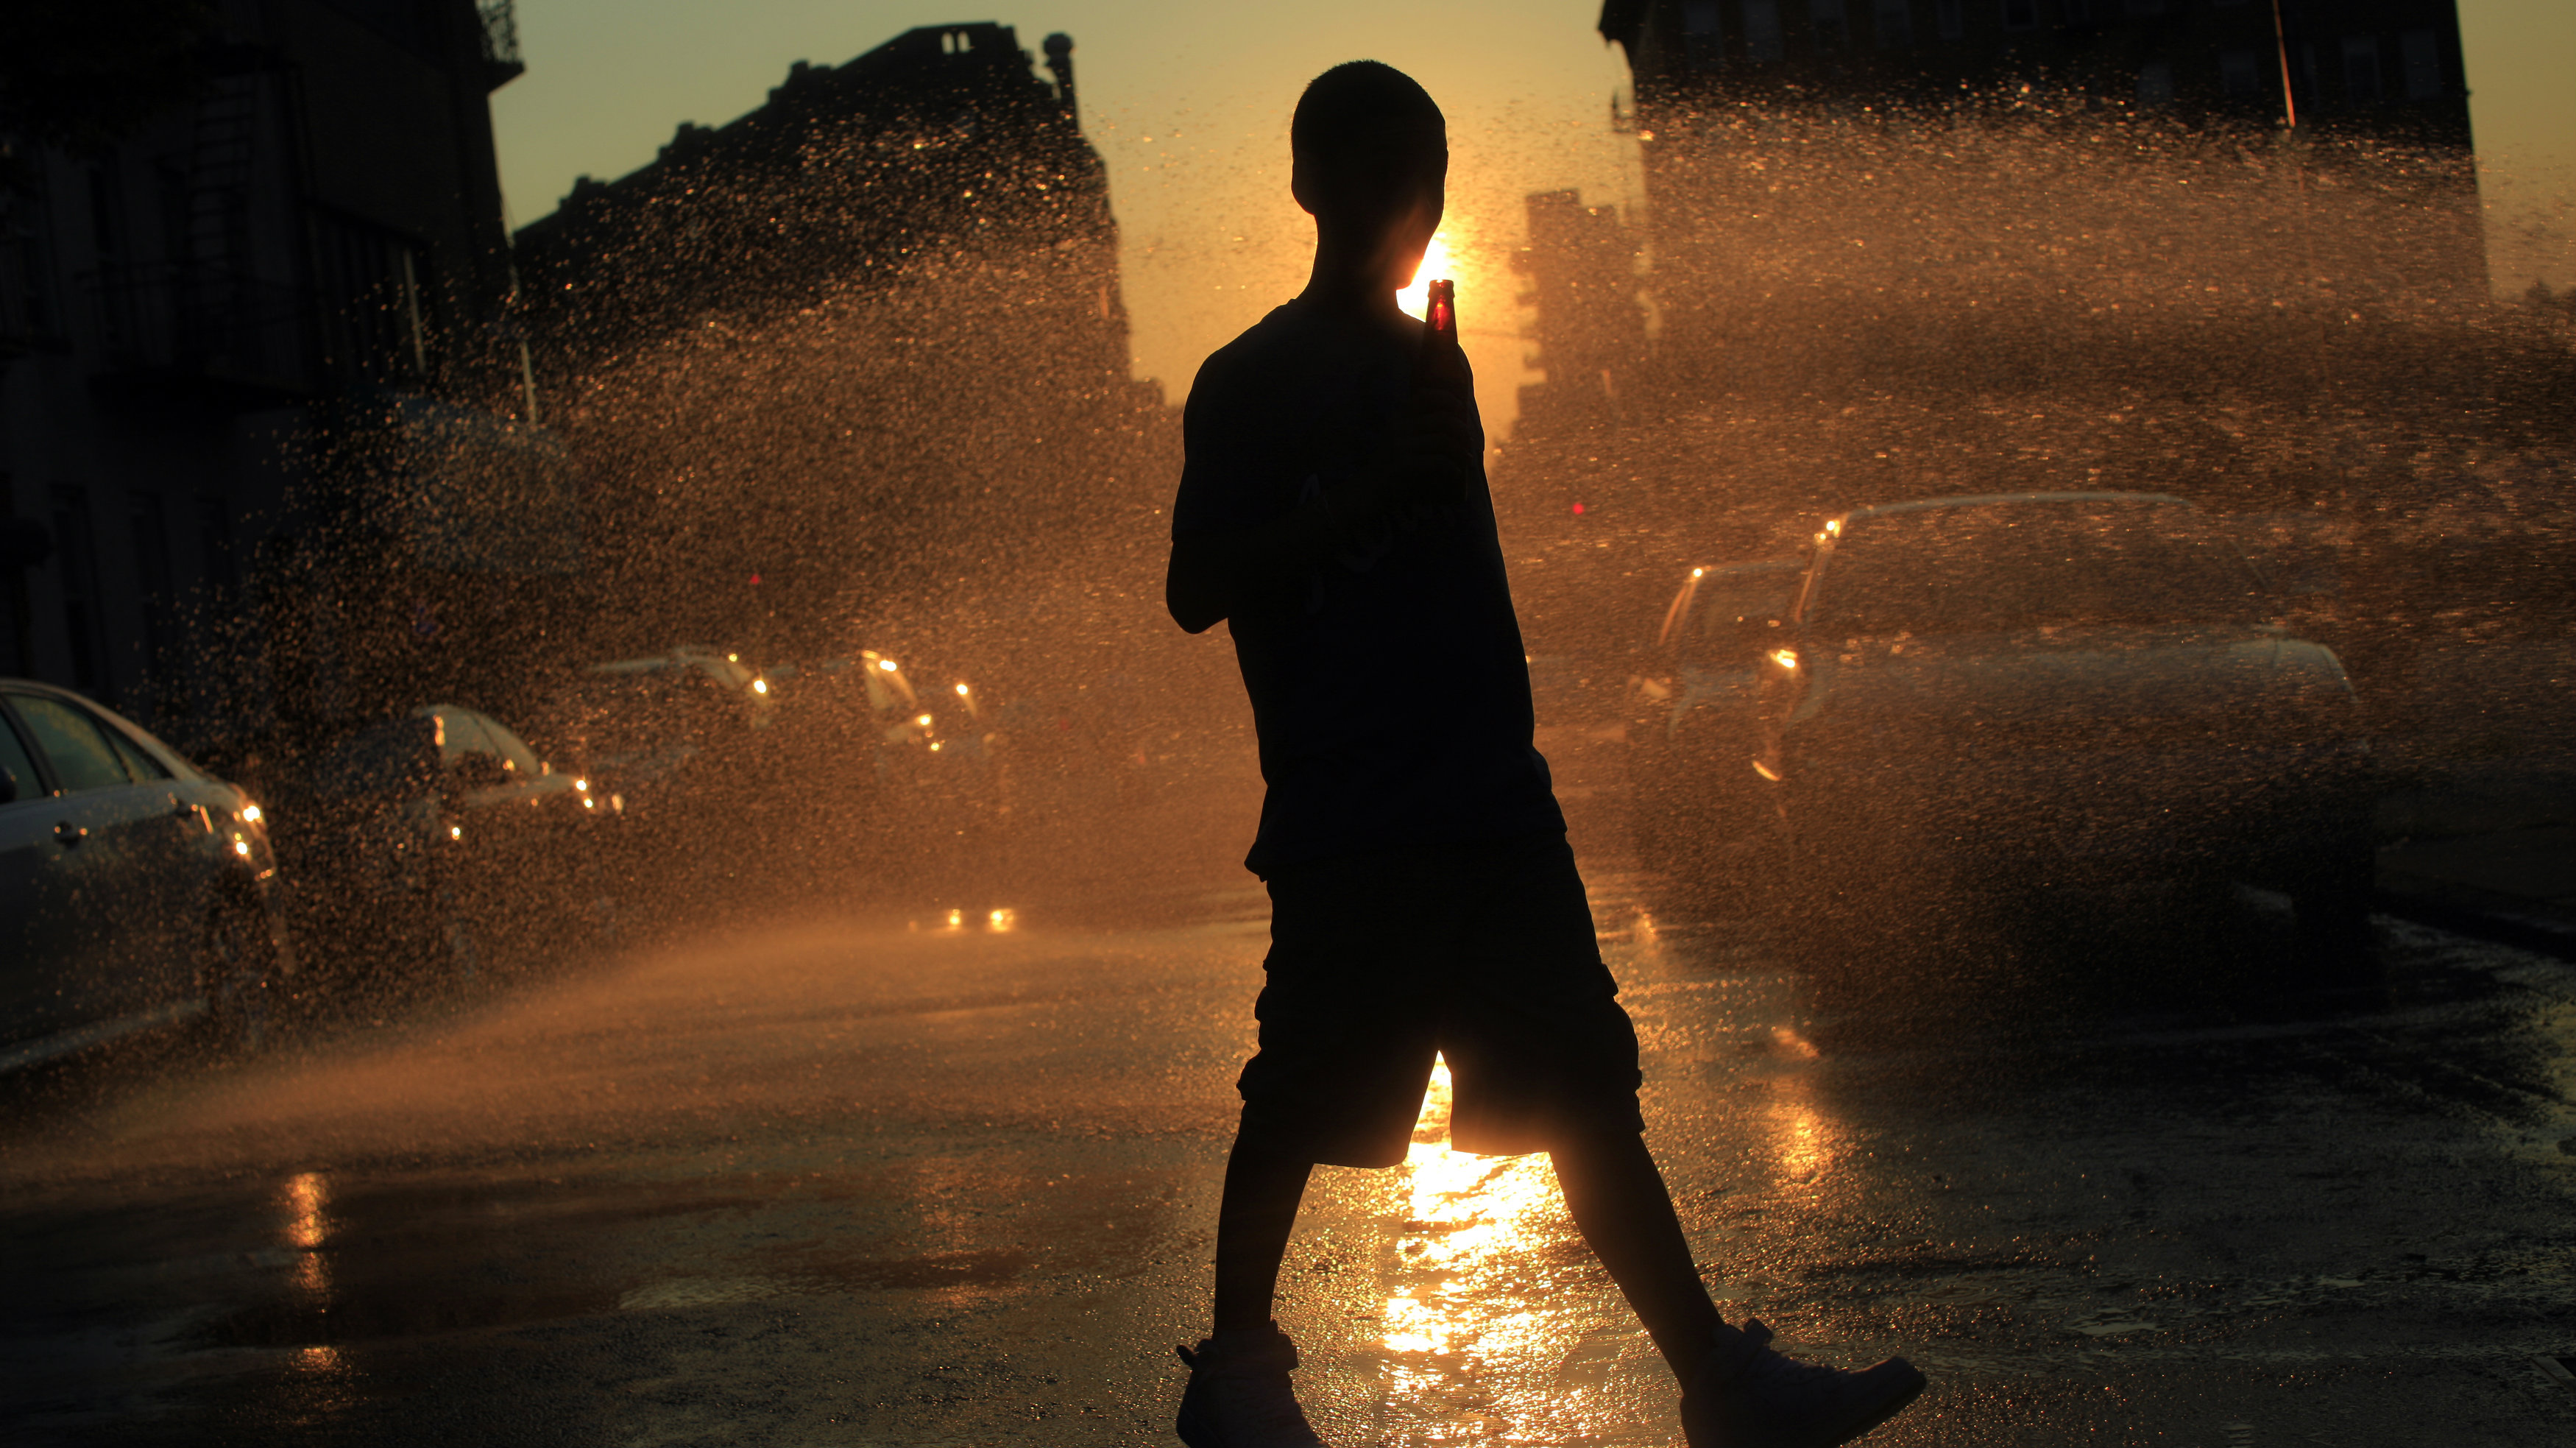 A boy walks near water spraying from an open fire hydrant in the Williamsburg neighborhood of Brooklyn, New York July 5, 2010. Temperatures soared toward 100 degrees or more Tuesday along much of the East Coast after an extended Fourth of July weekend when temperatures inched into at least the 90s from Maine to Texas. REUTERS/Eric Thayer